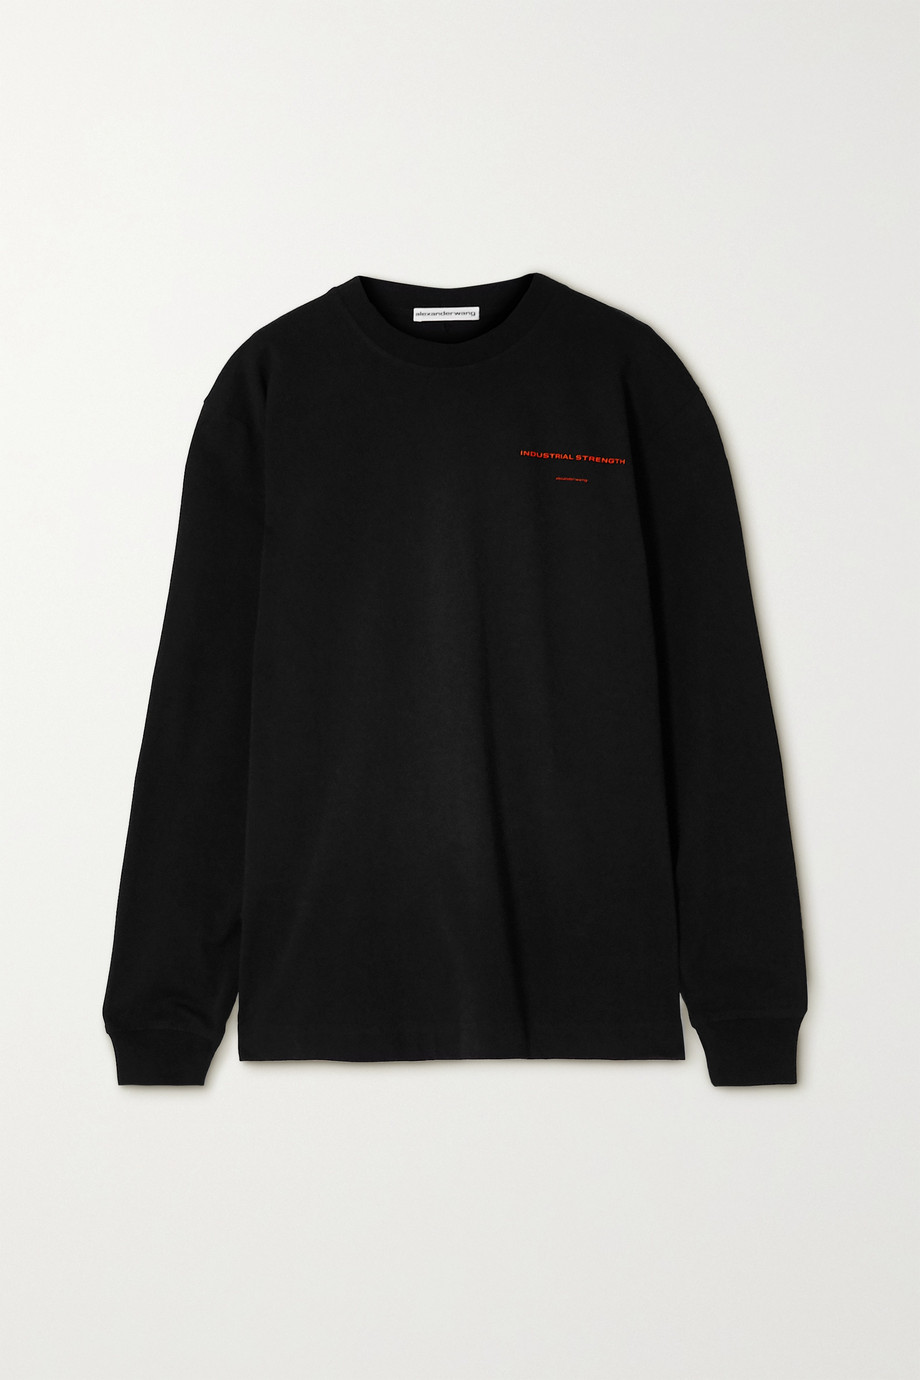 Alexander Wang Oversized printed cotton-jersey sweatshirt